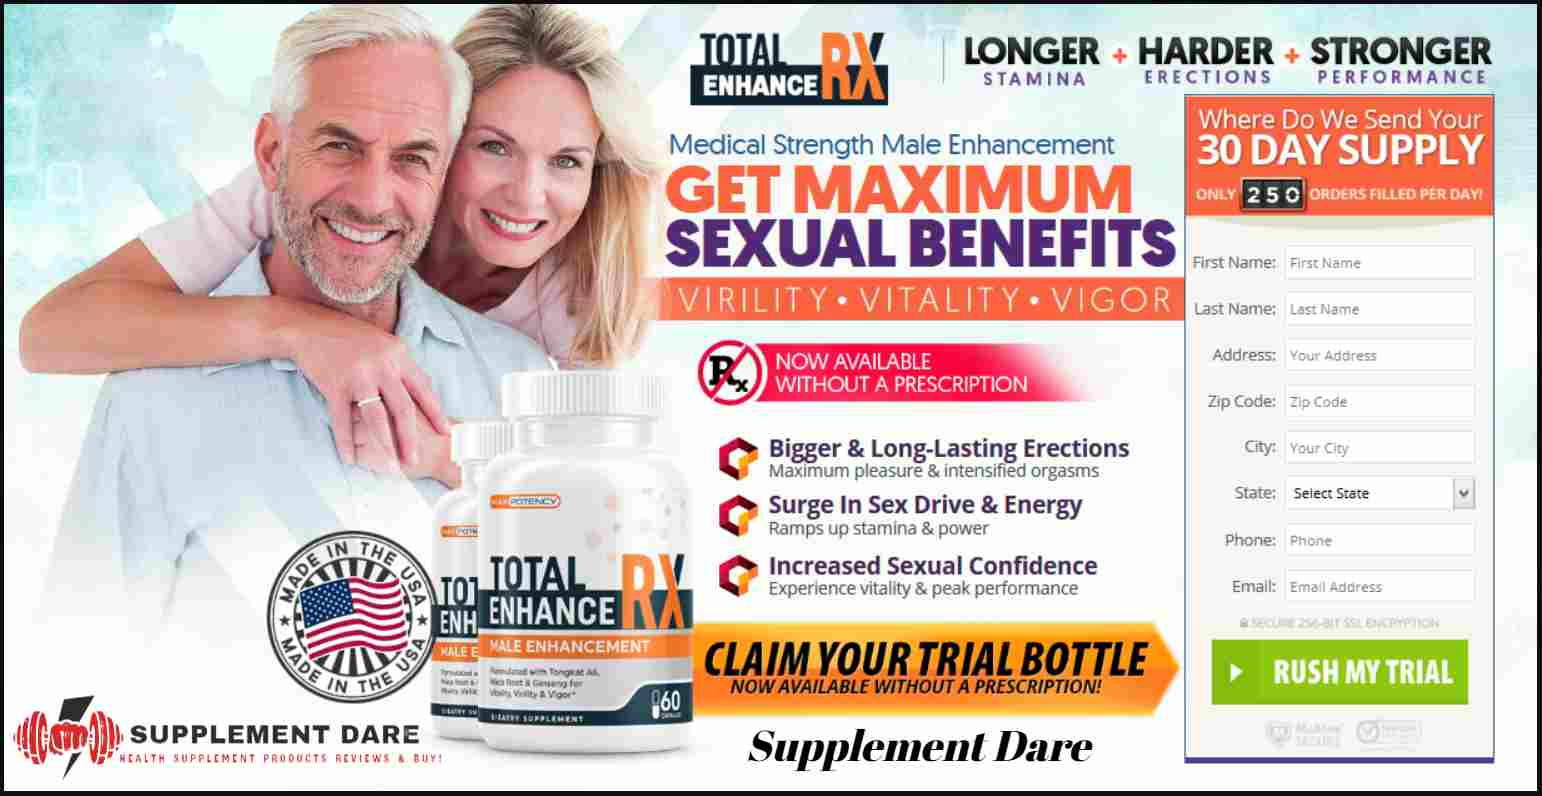 Total Enhance RX Pills